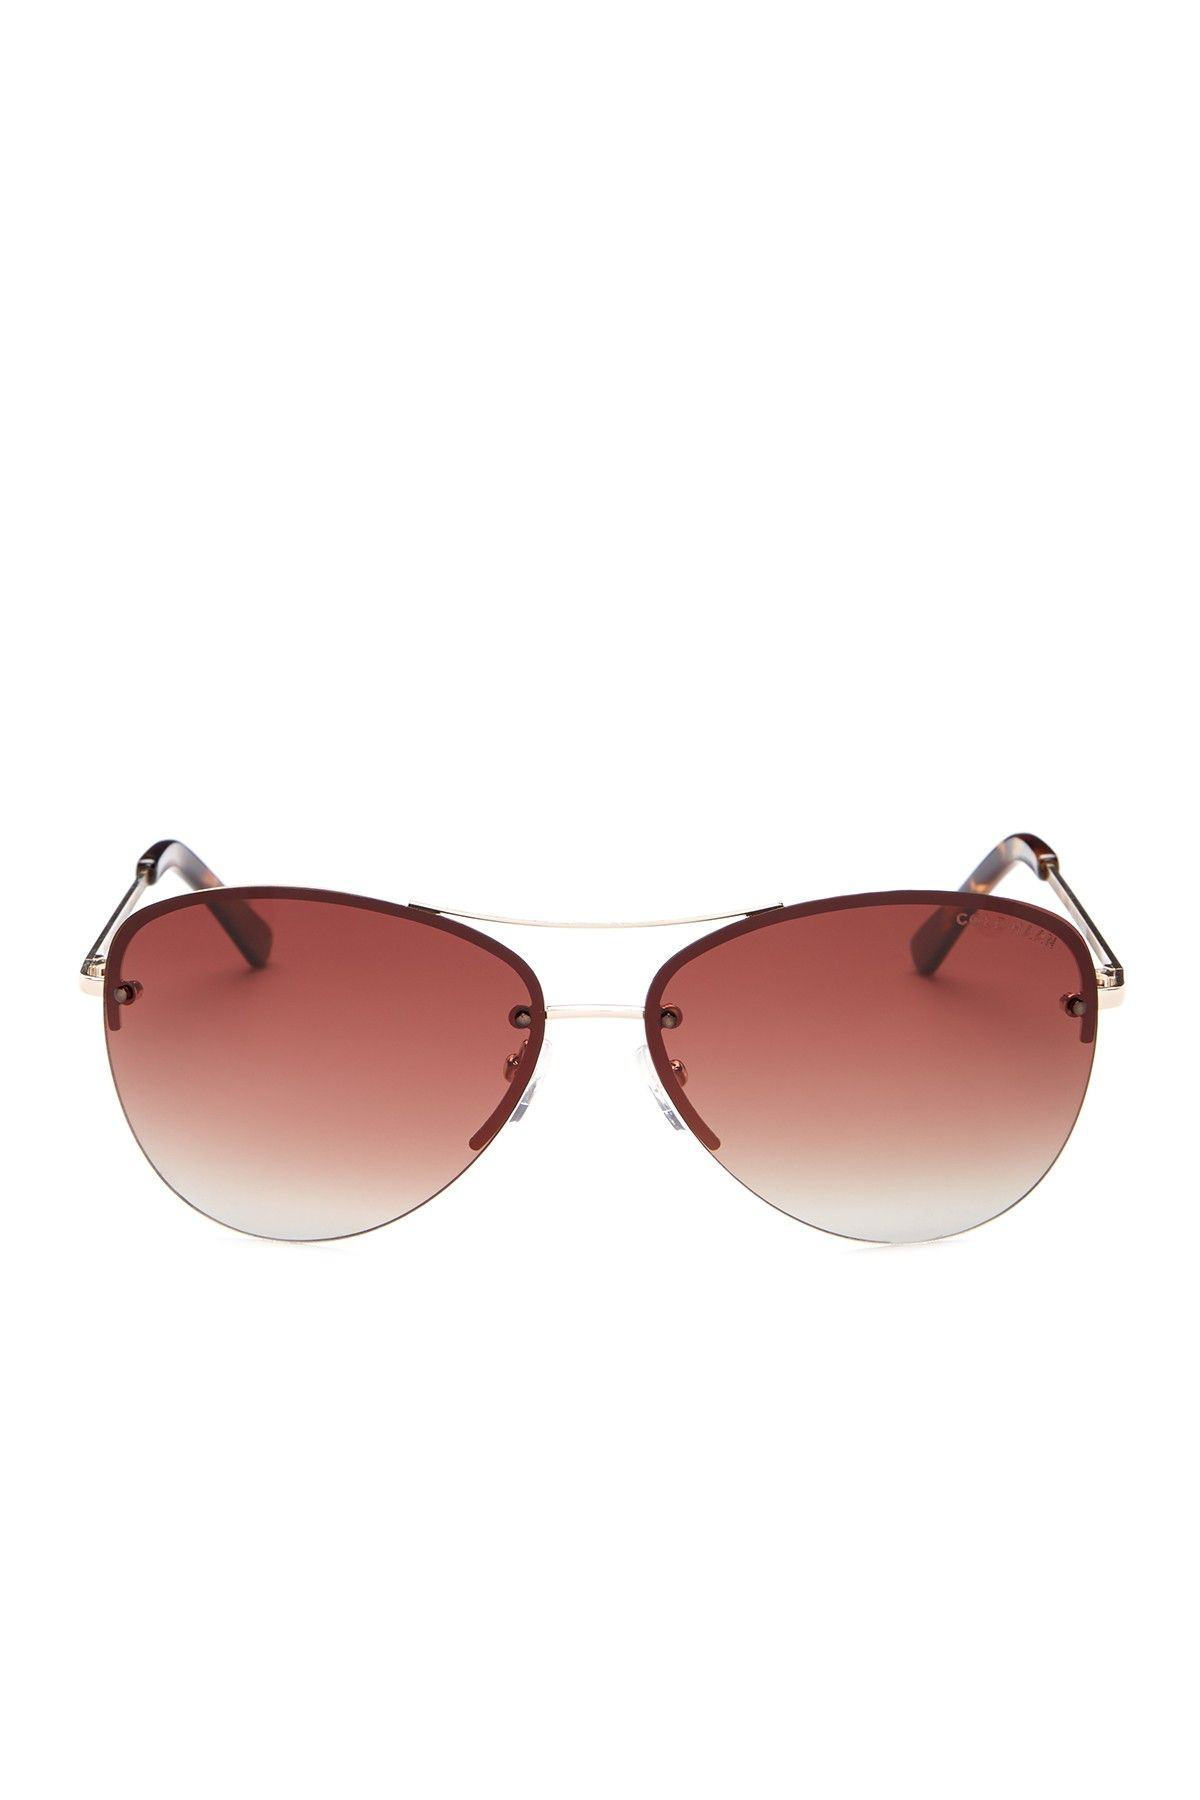 34bbfdfcdc Women s Aviator Polarized Sunglasses by Cole Haan on  nordstrom rack